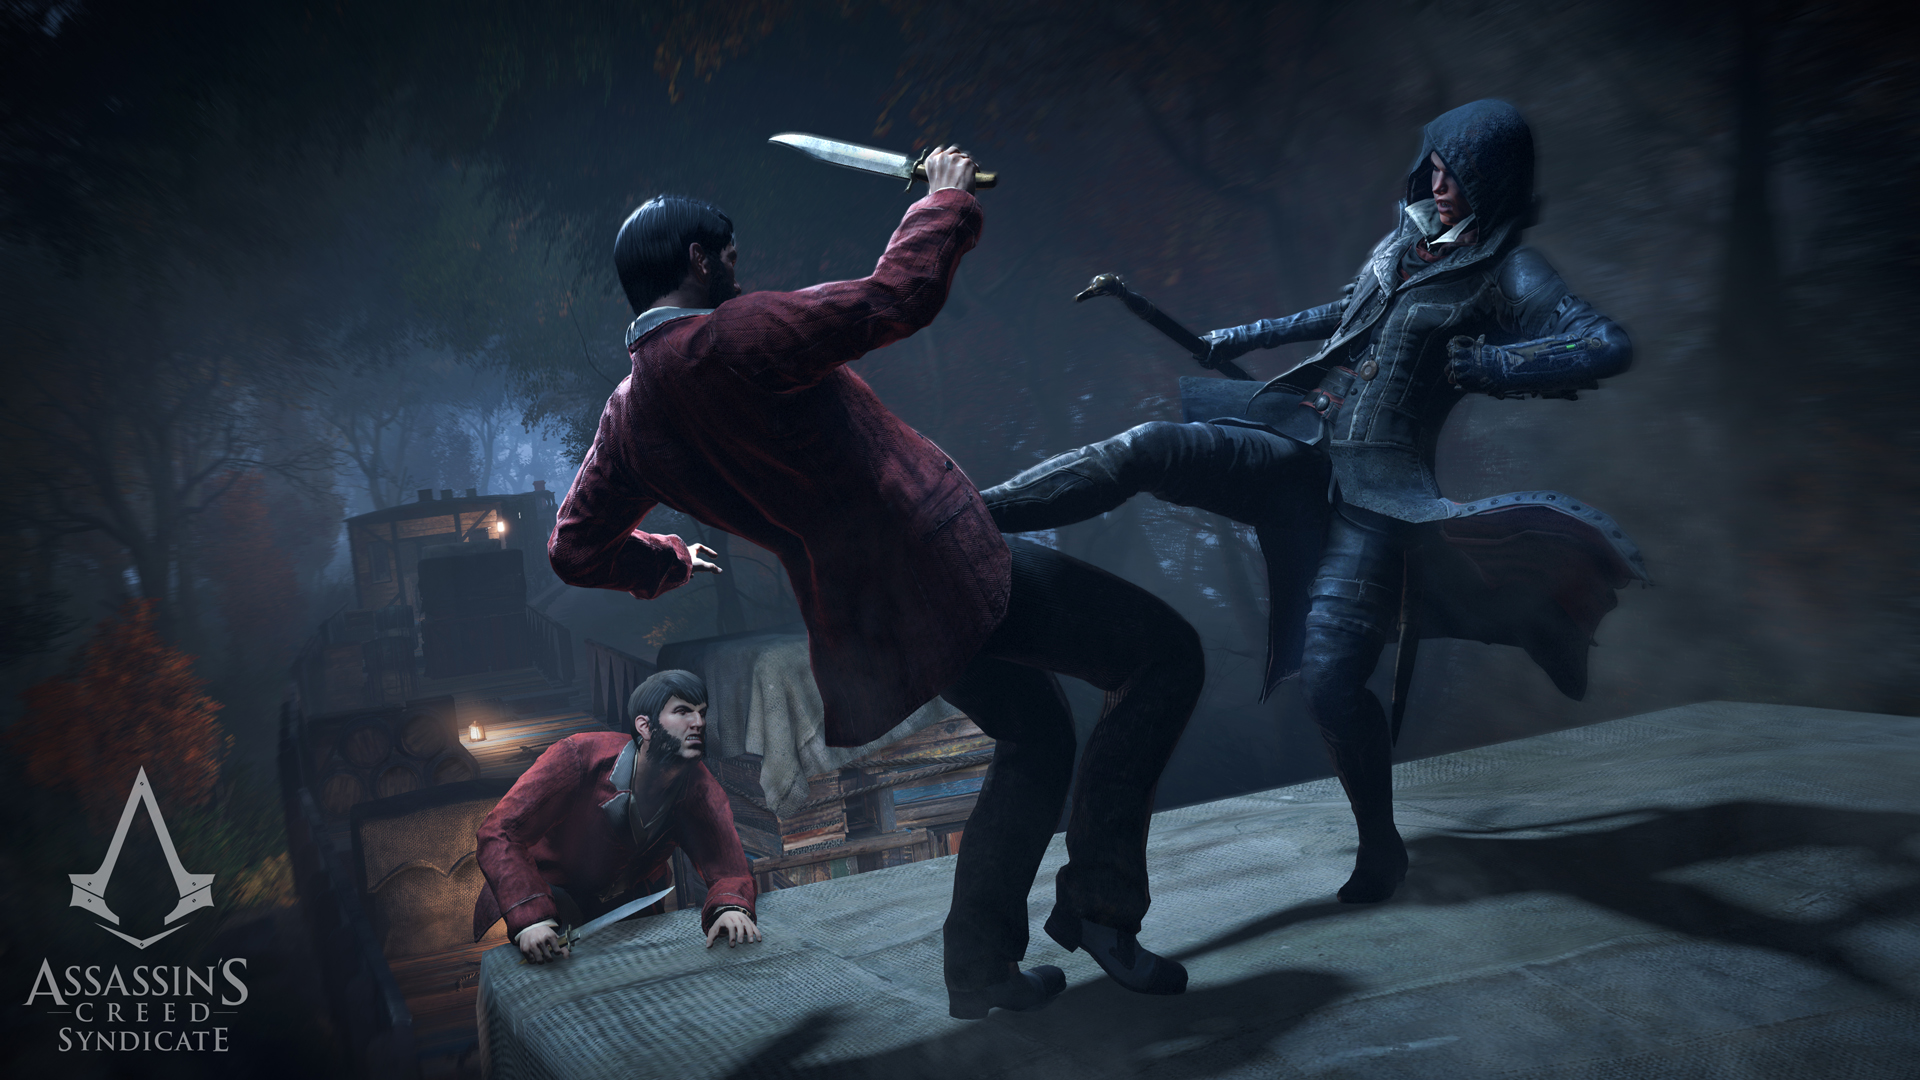 Assassin S Creed Syndicate Sequence 4 Cable News Vg247